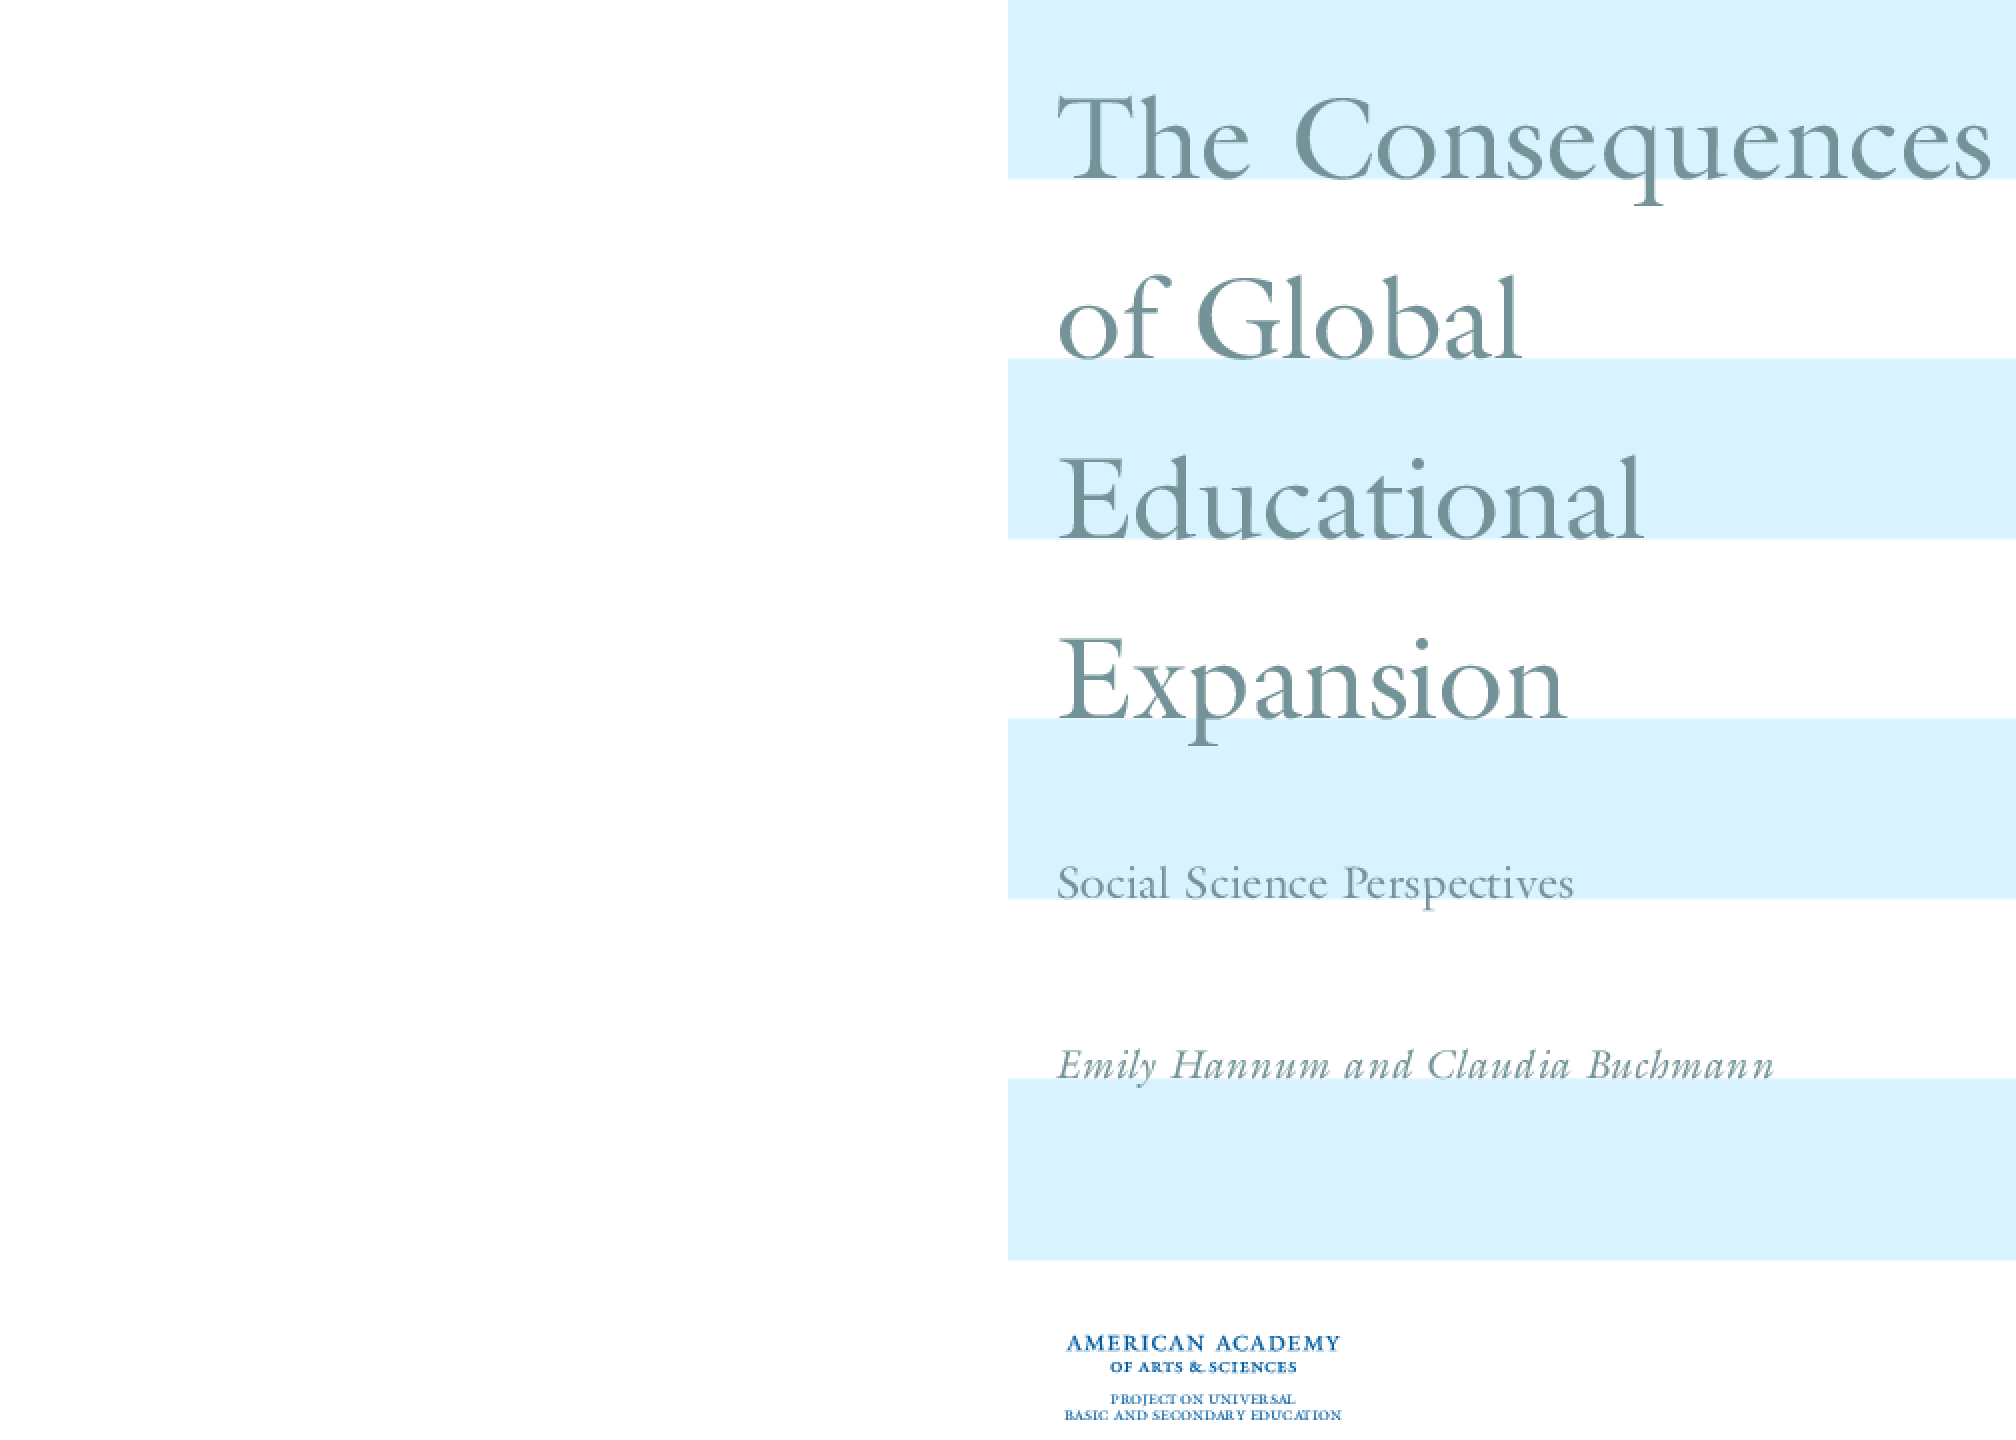 The Consequences of Global Educational Expansion